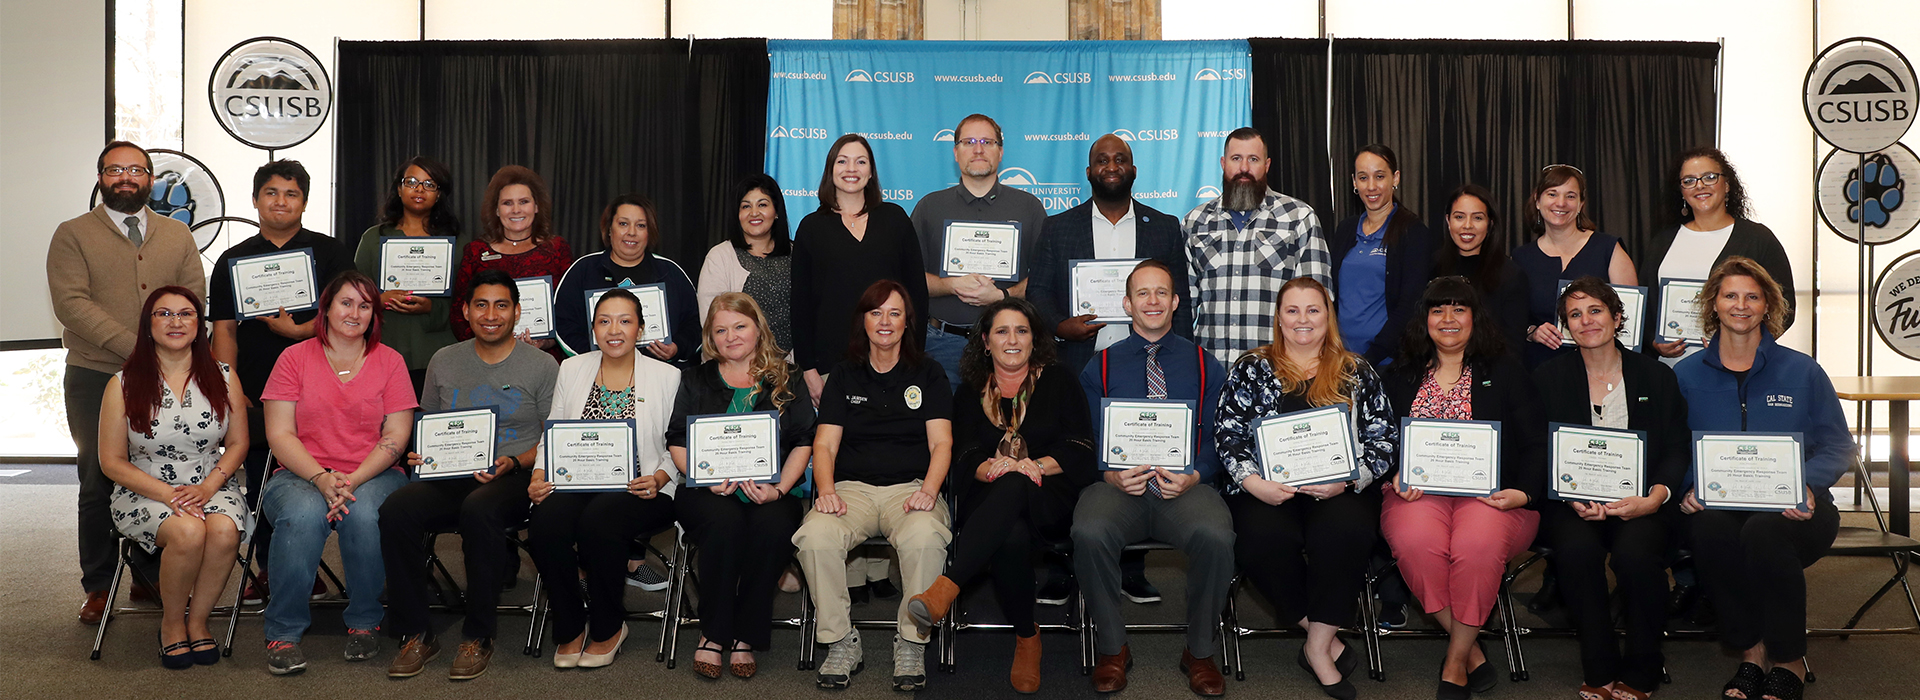 25 graduate from CSUSB Community Emergency Response Team program